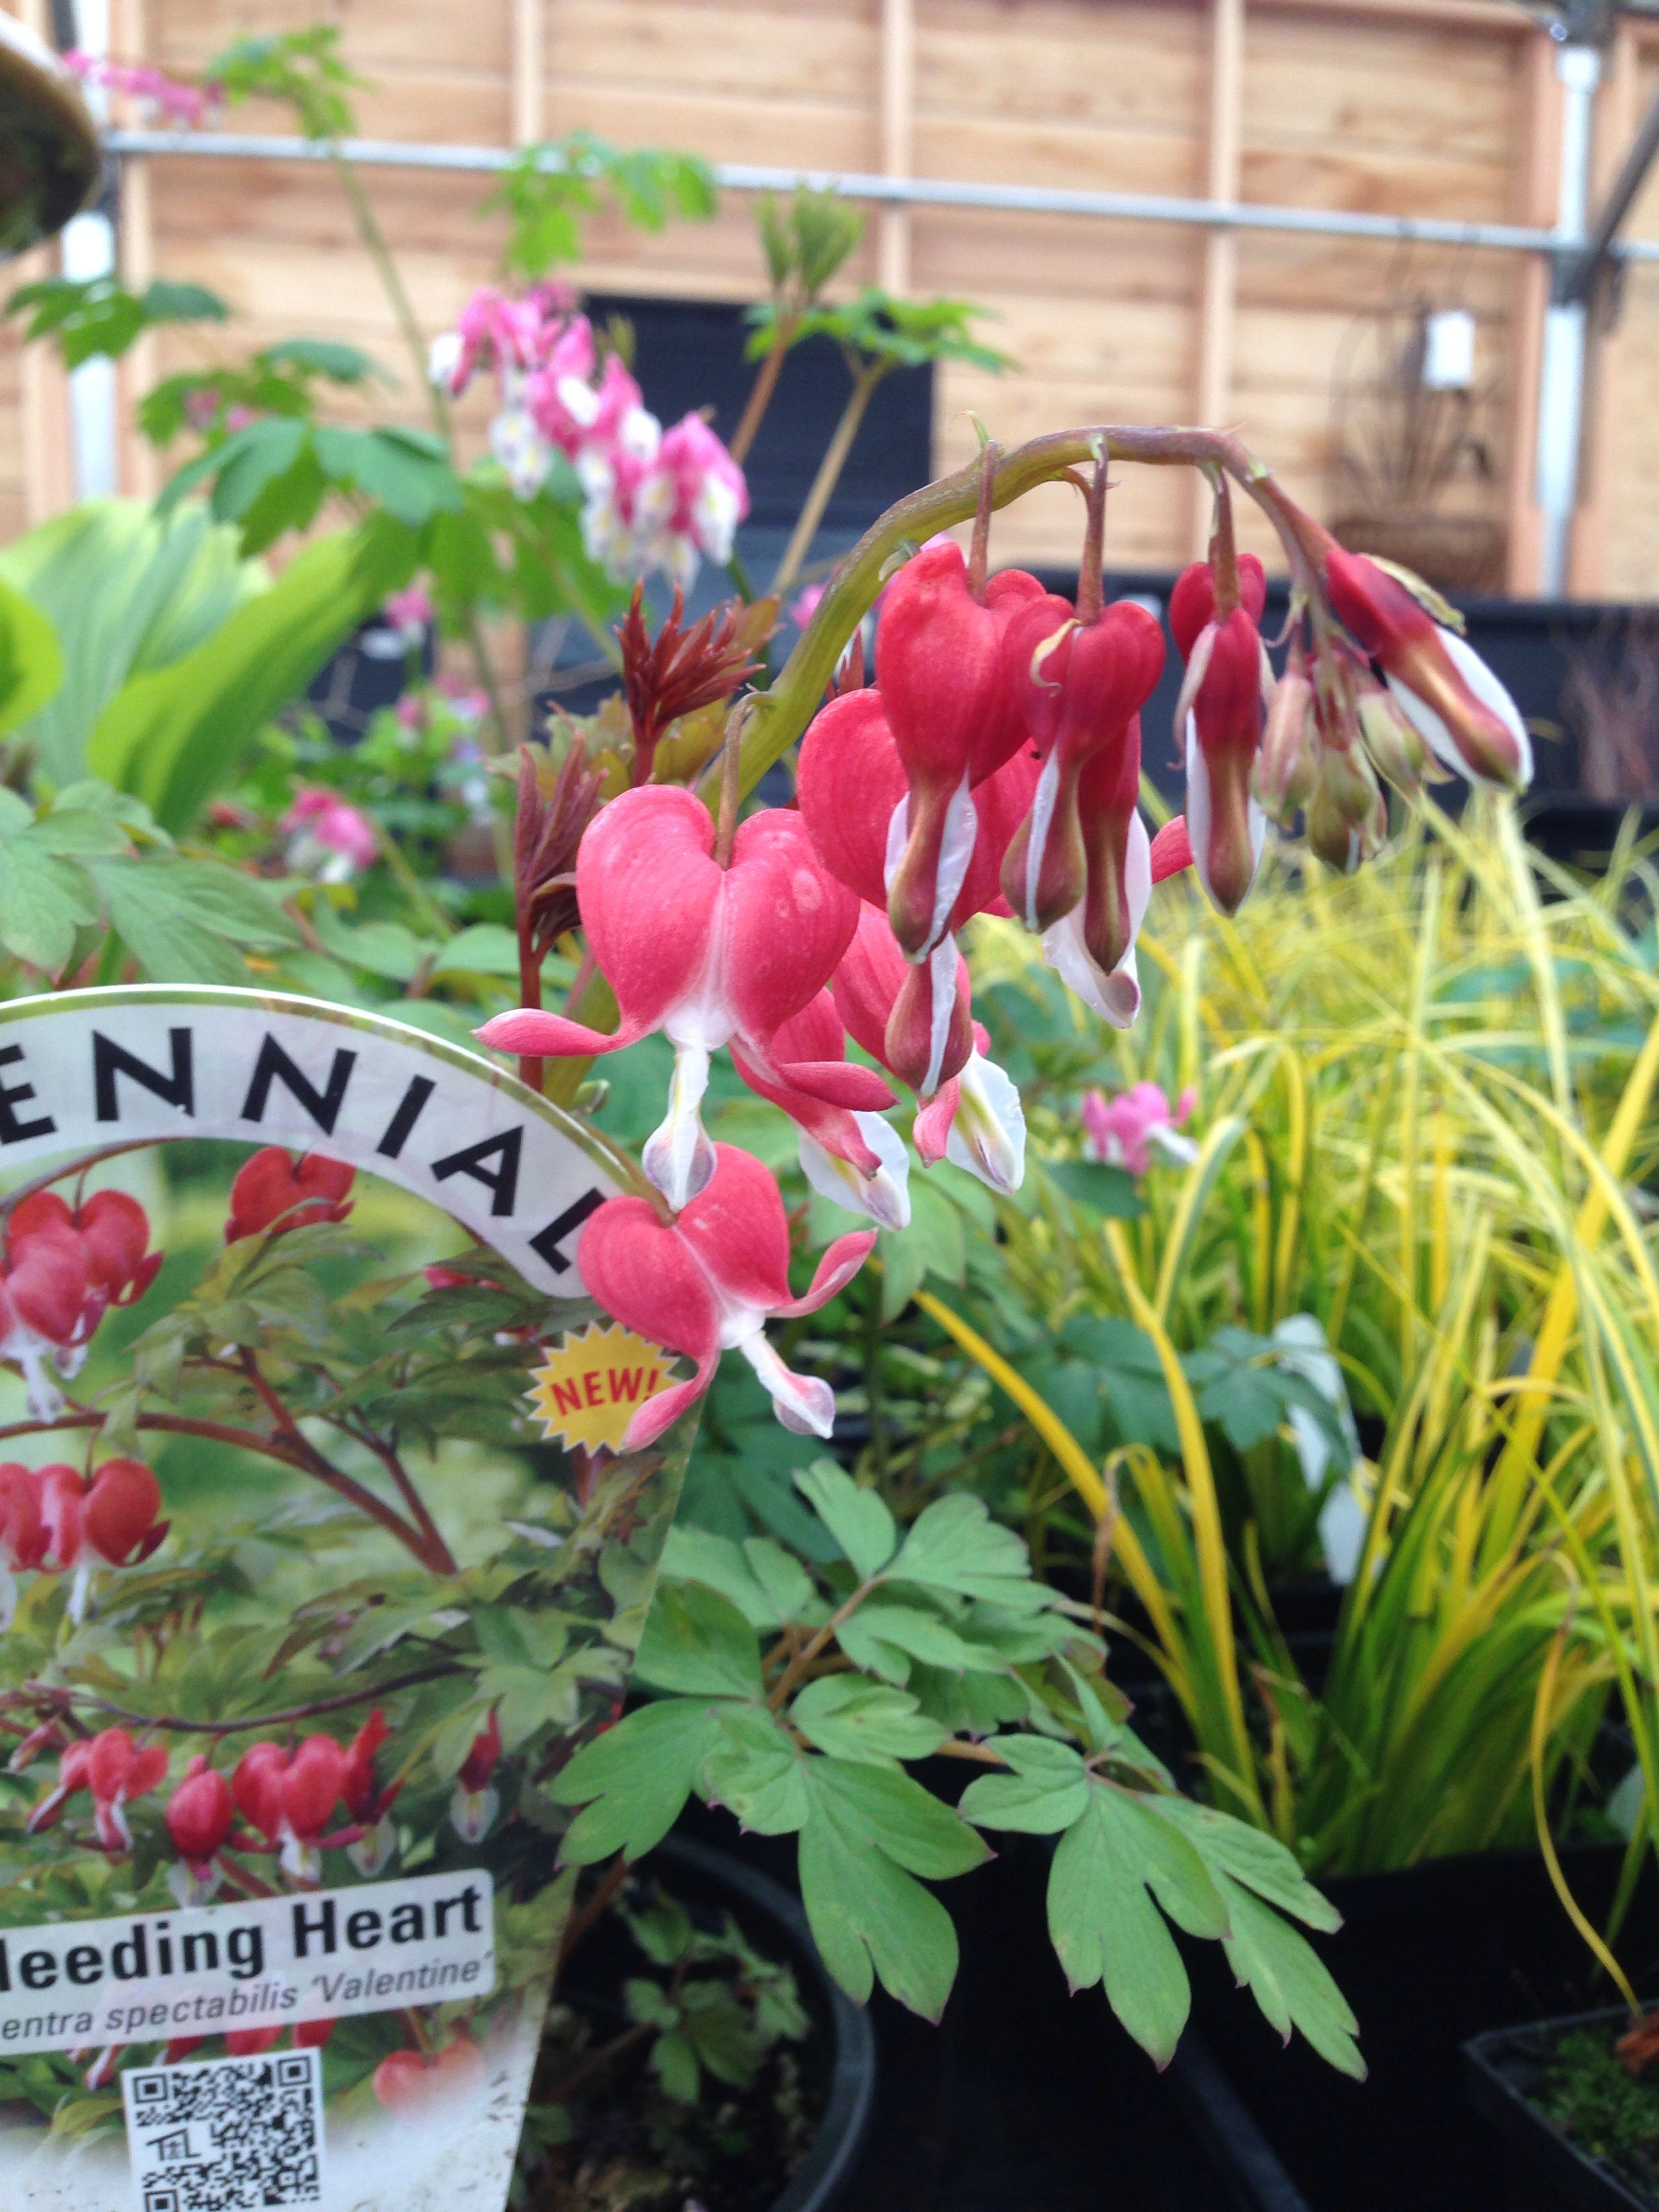 Dicentra Spectabilis Valentine A Red Bleeding Heart For The Partly Shaded Garden Spot Find Yours At Cornell Farm Bleeding Heart Shade Garden Low Lights